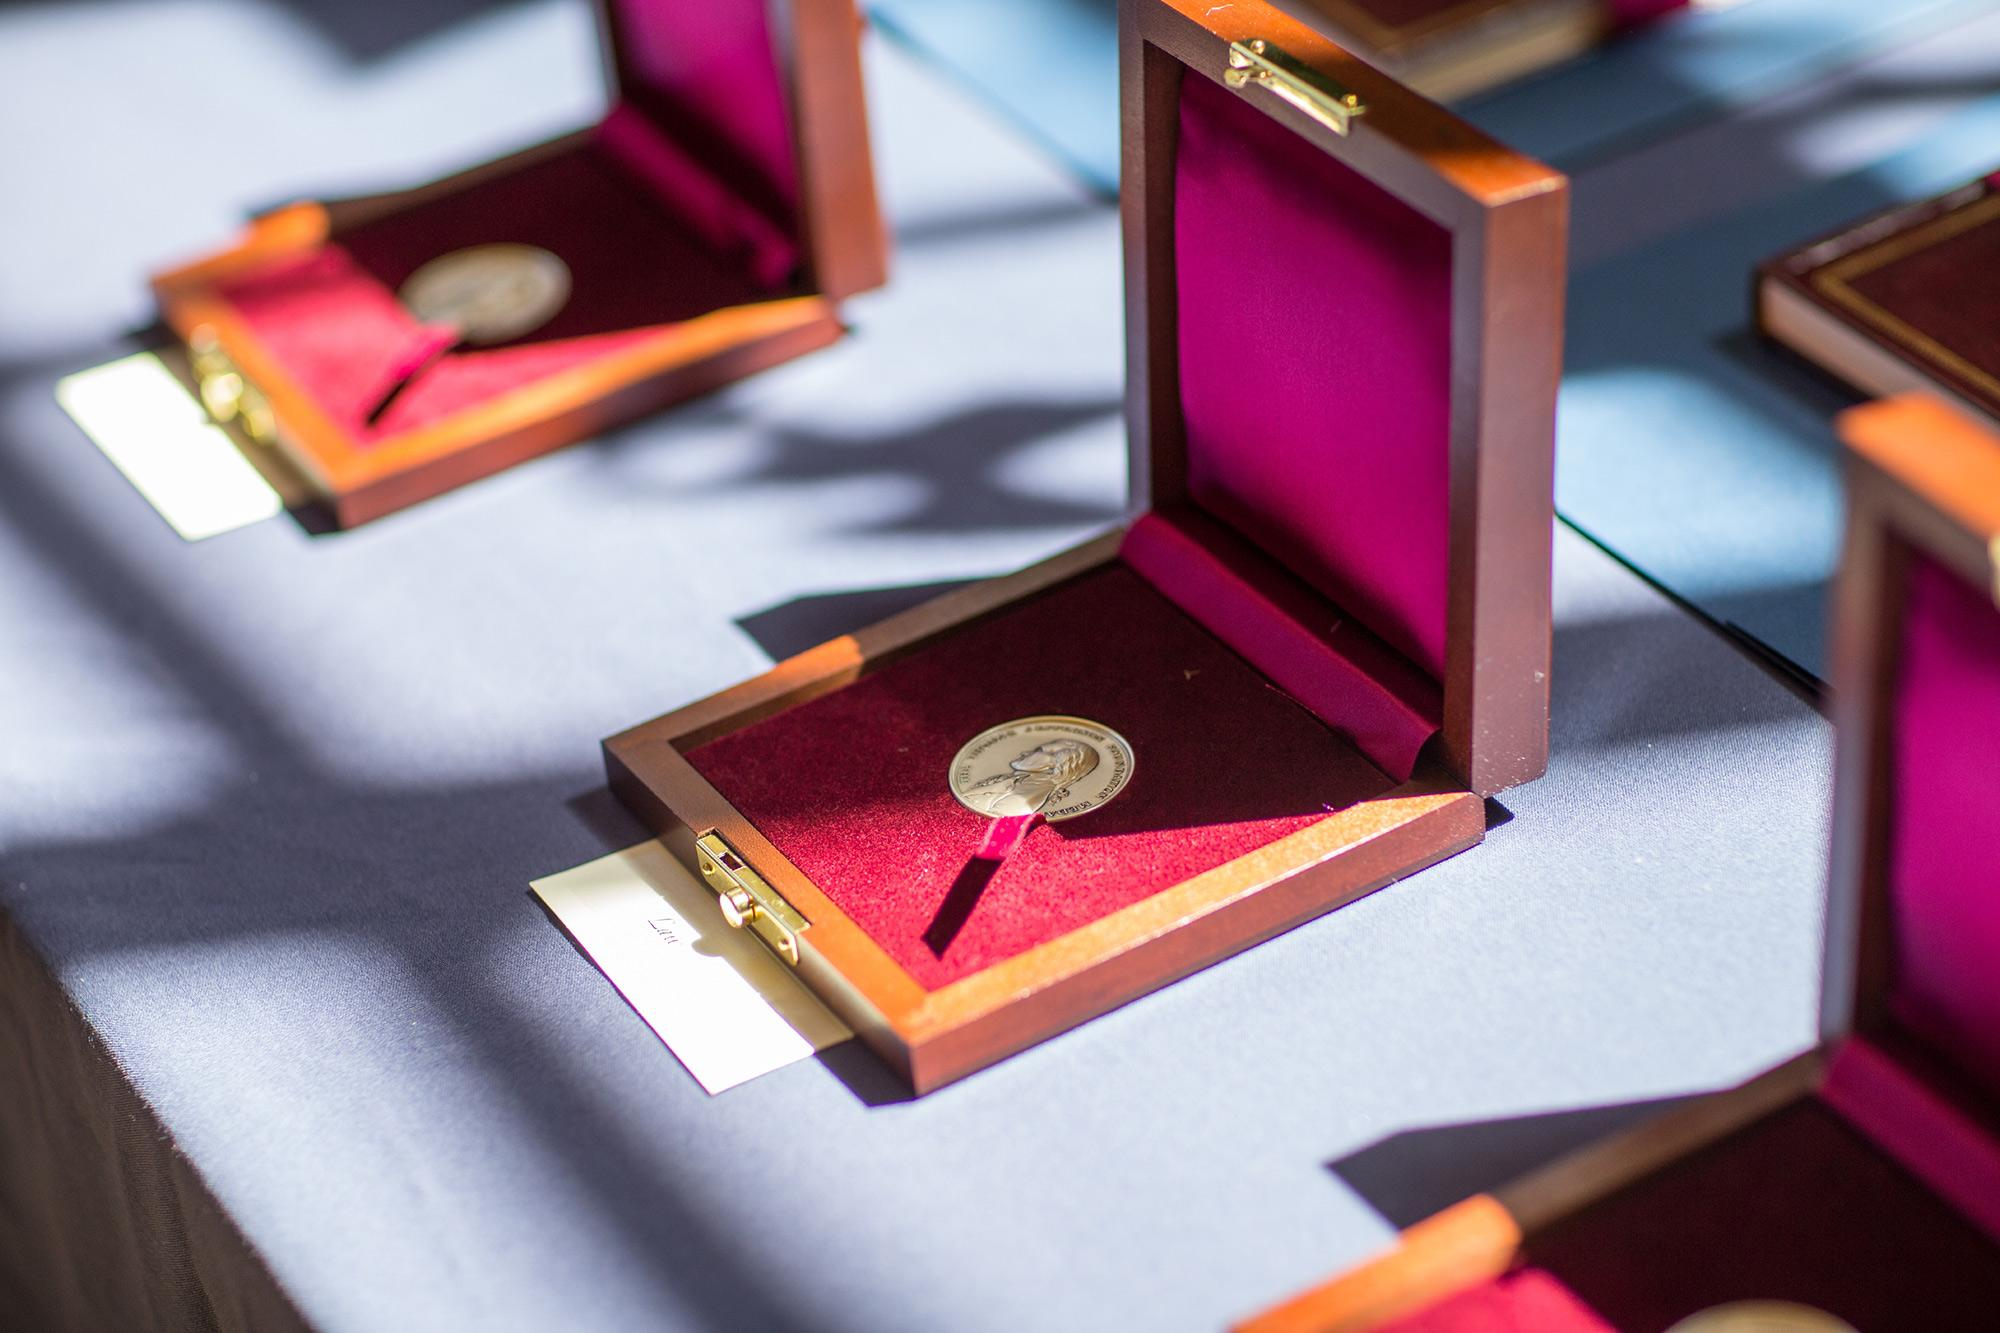 The University and the Thomas Jefferson Foundation at Monticello will present the Thomas Jefferson Foundation Medals during Thursday's Founder's Day celebrations.